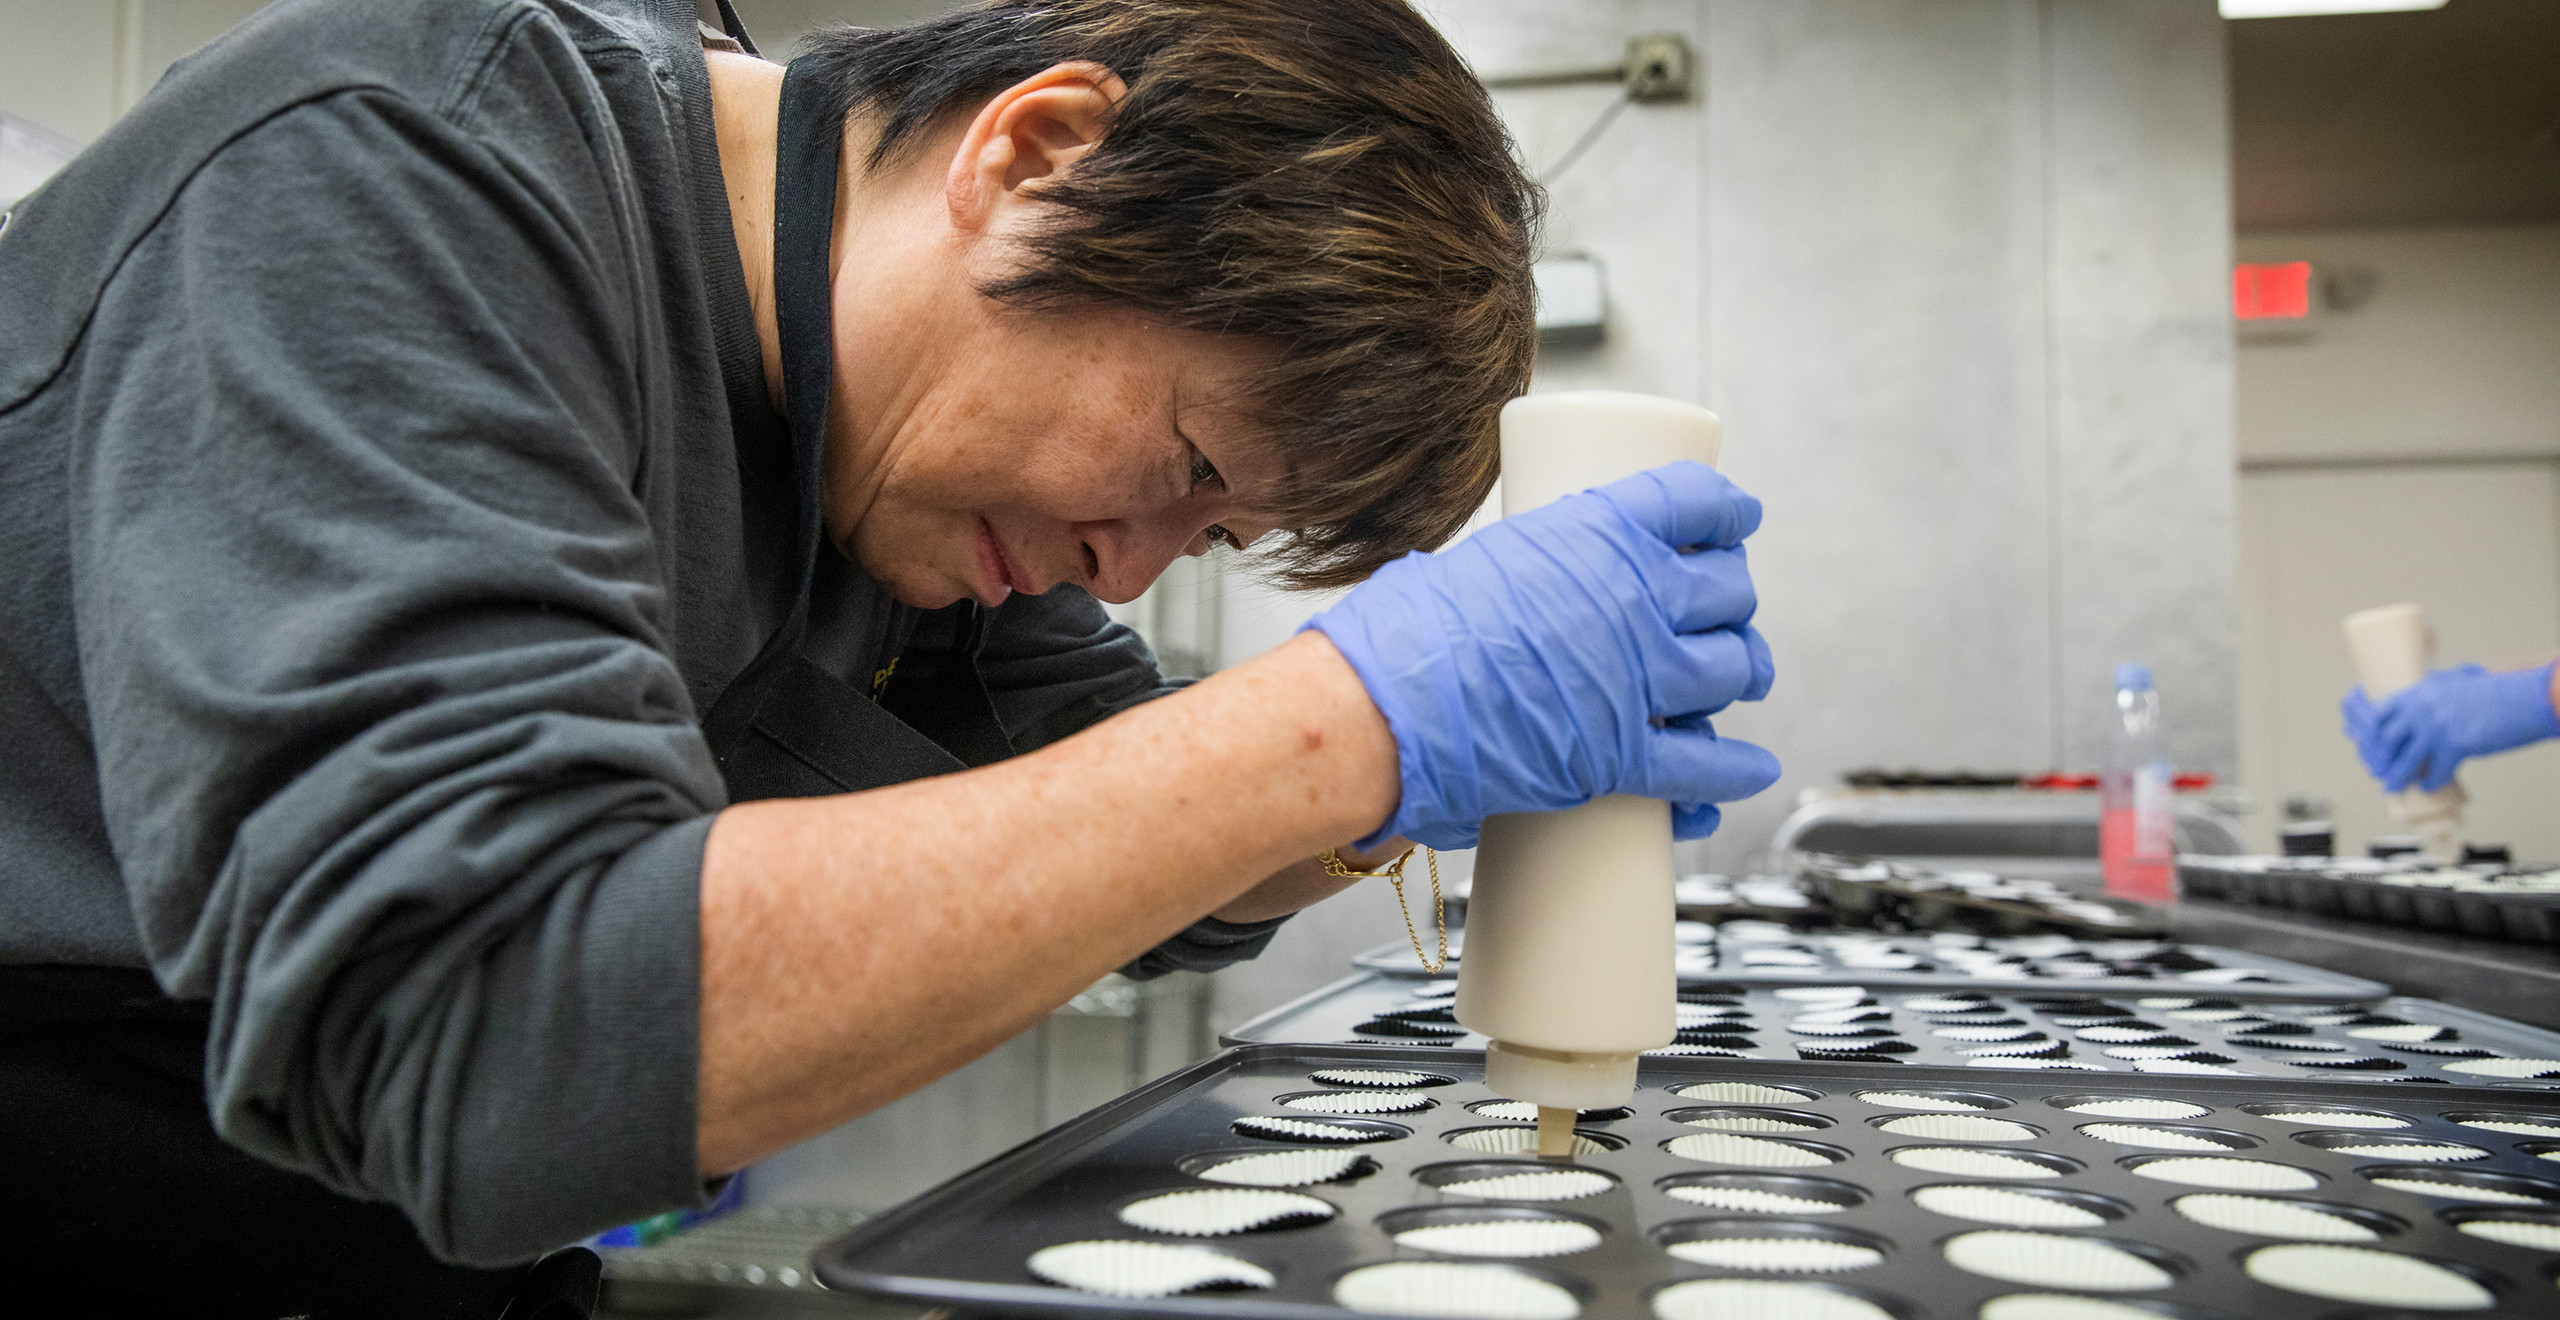 A middle-aged Asian volunteer leans over a mini cupcake pan with intense focus, smiling slightly as she fills the pan.